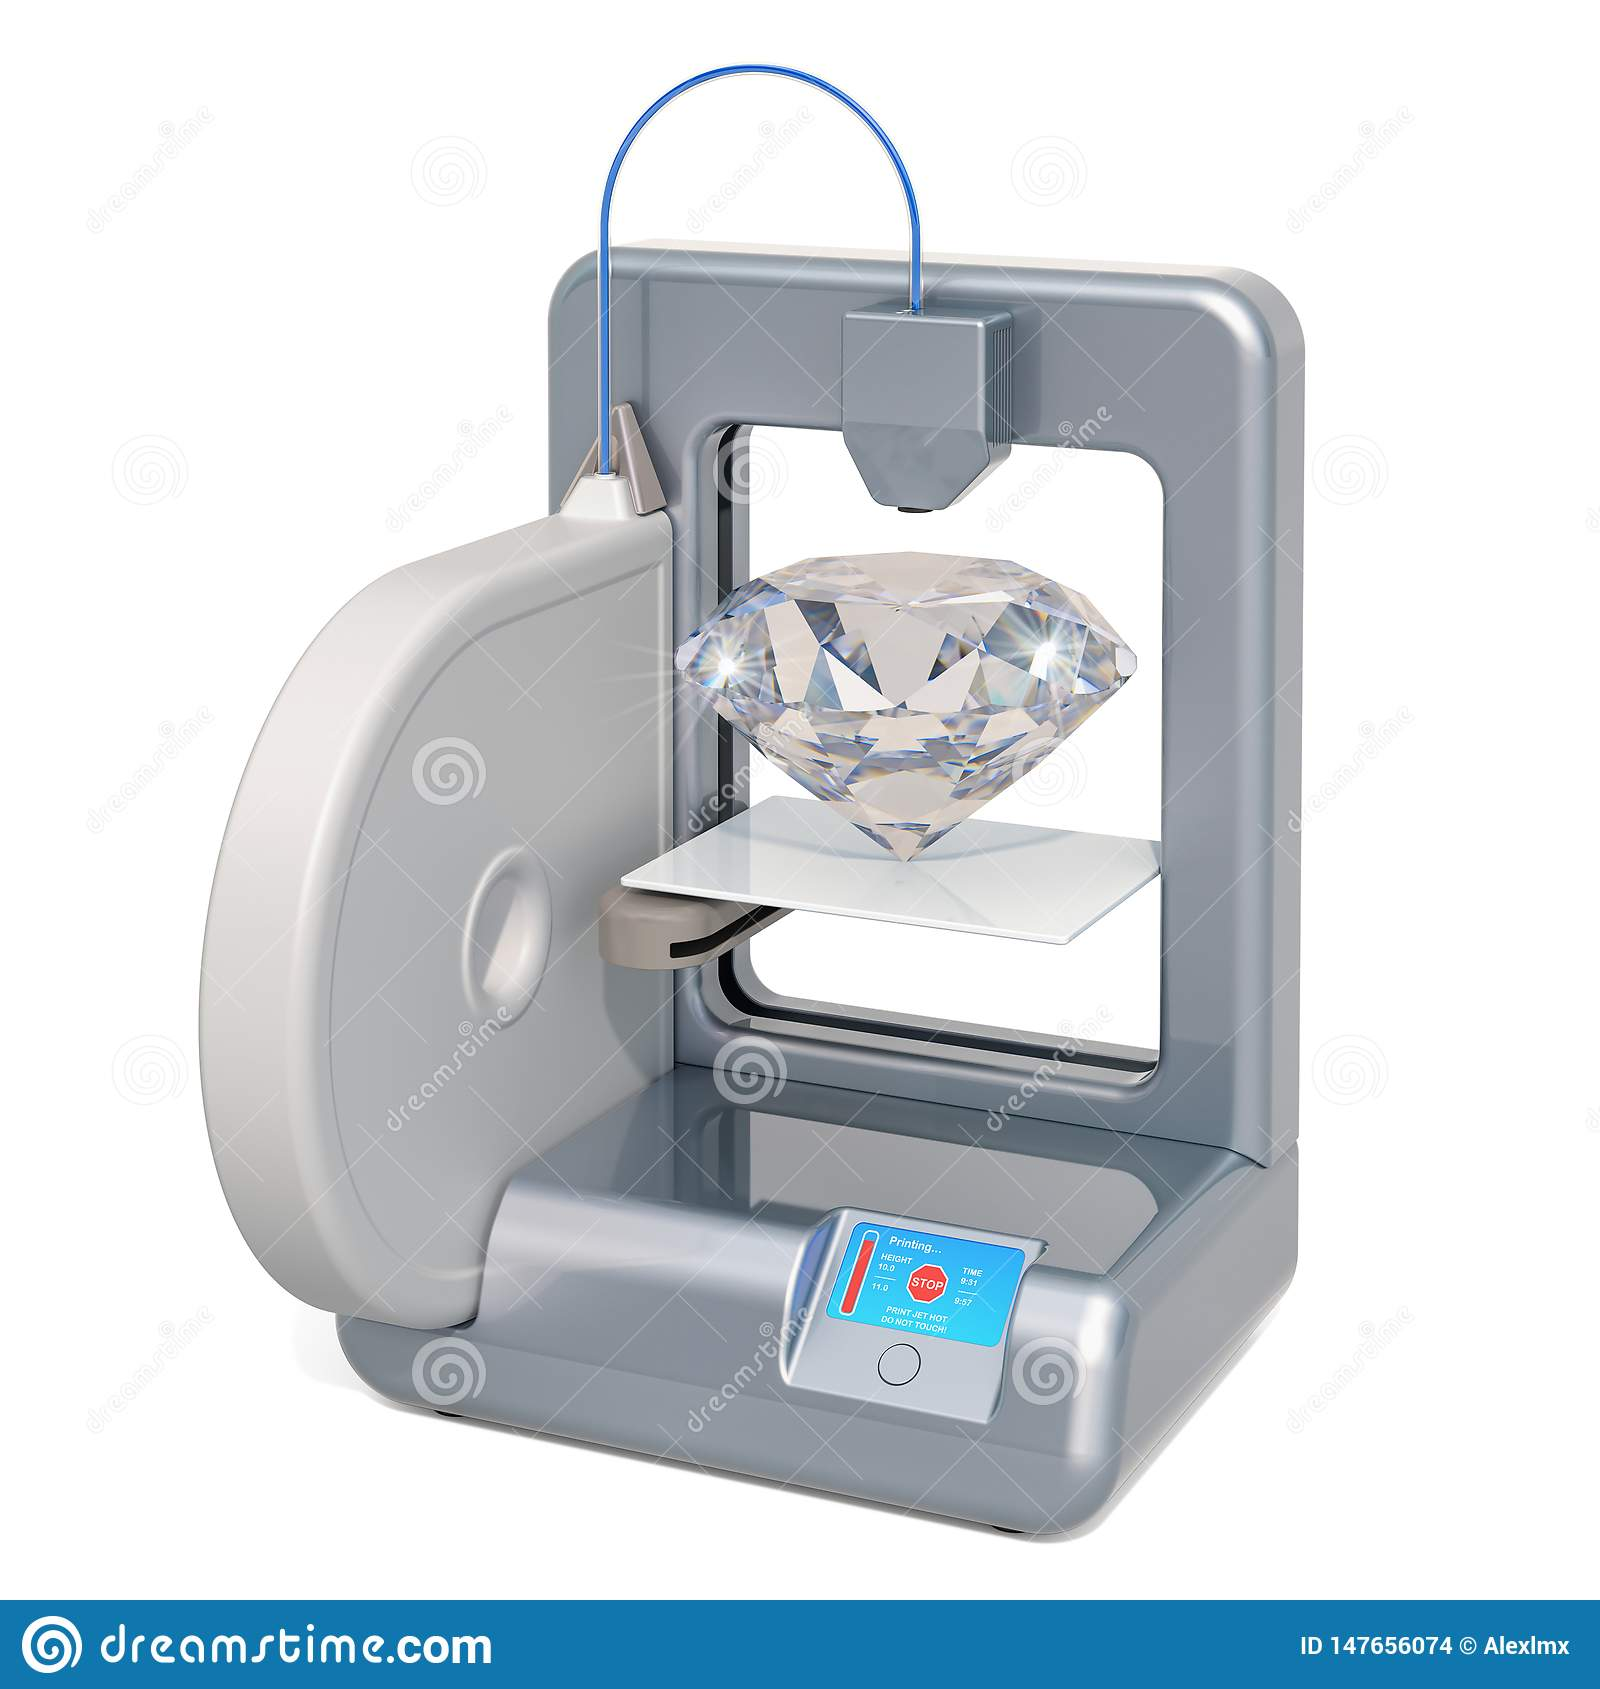 Three dimensional printer with diamond, 3D rendering